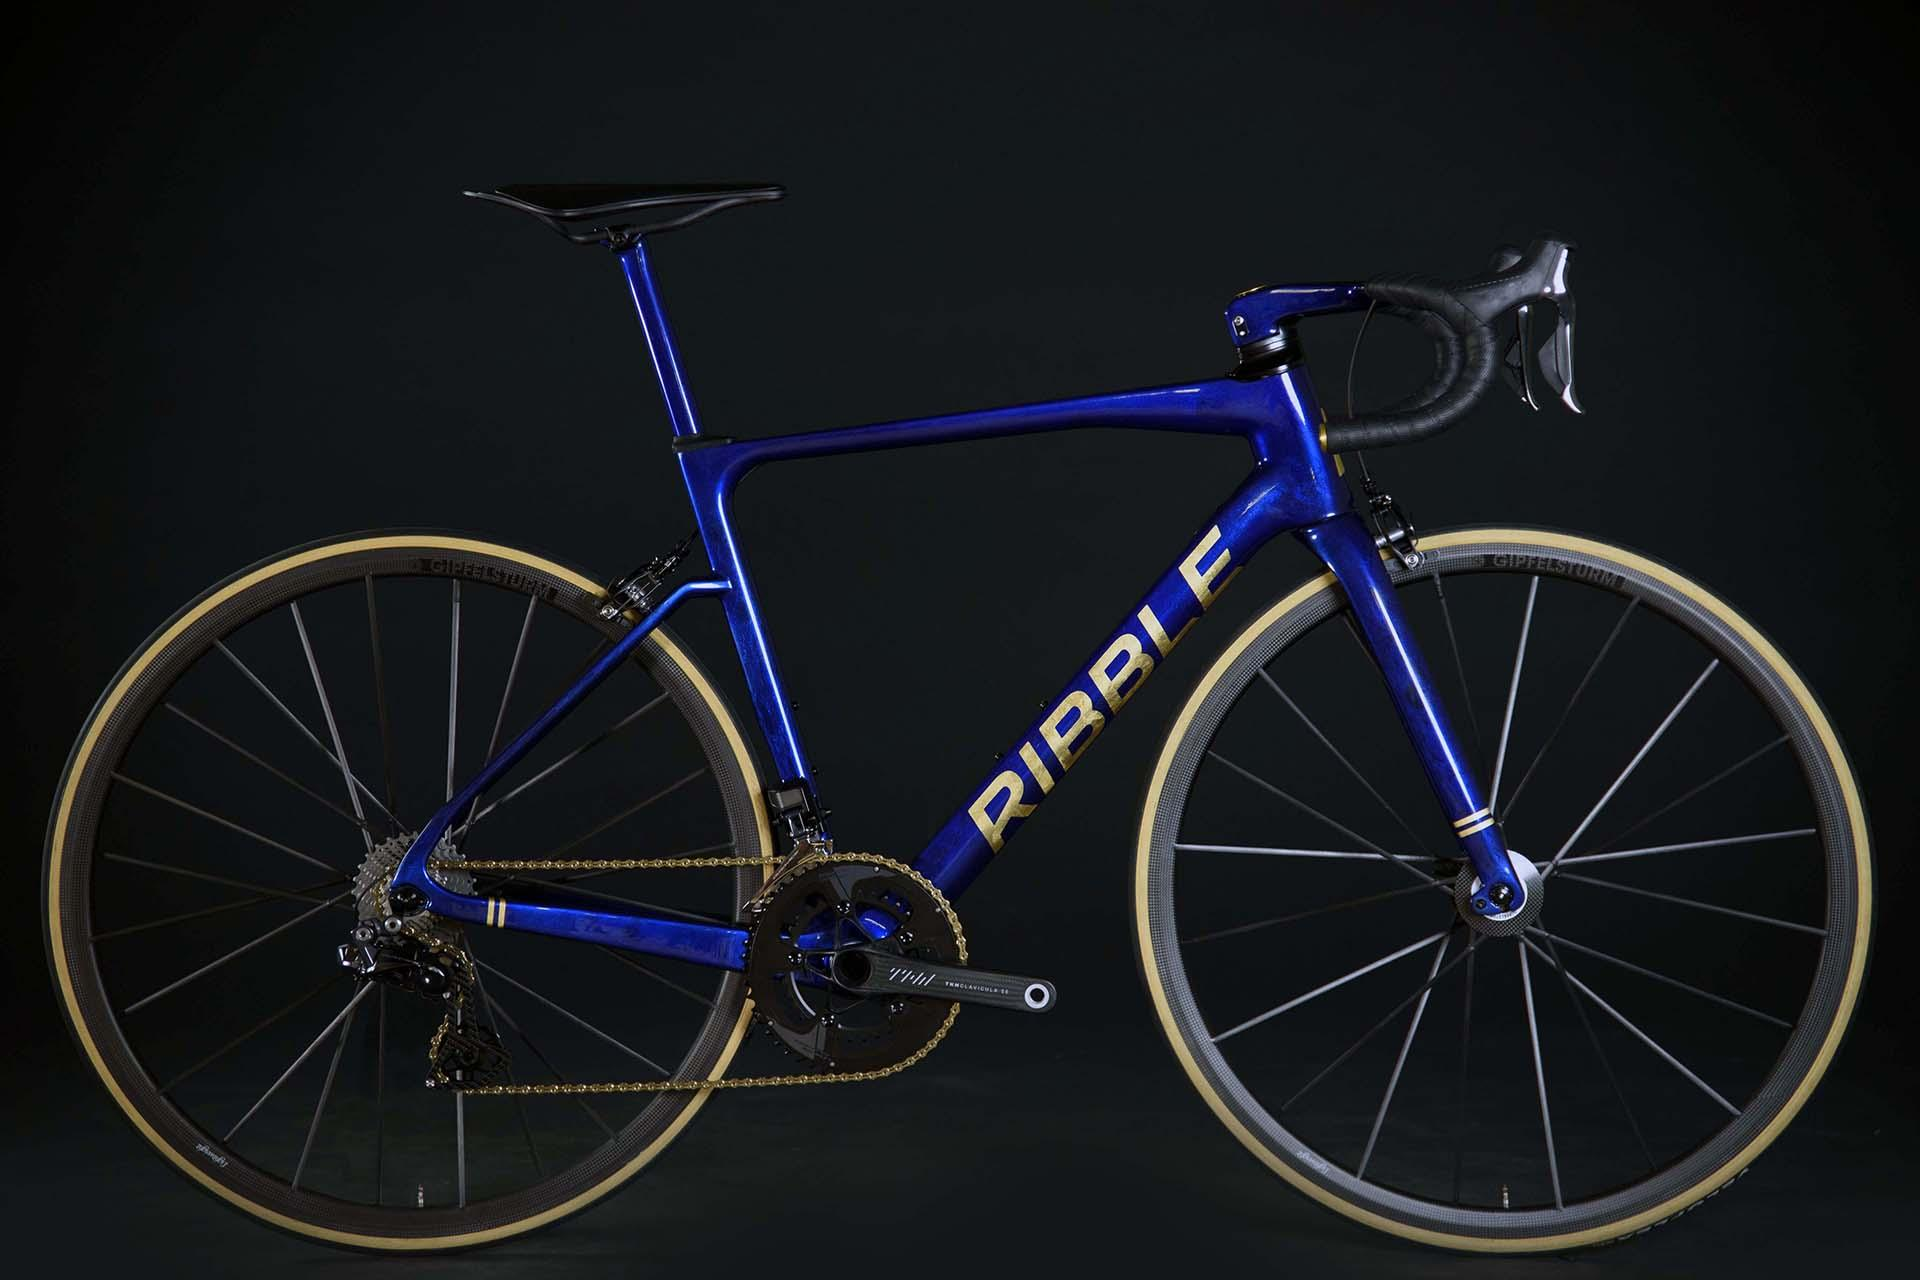 Ribble Endurance SL R with gold leaf